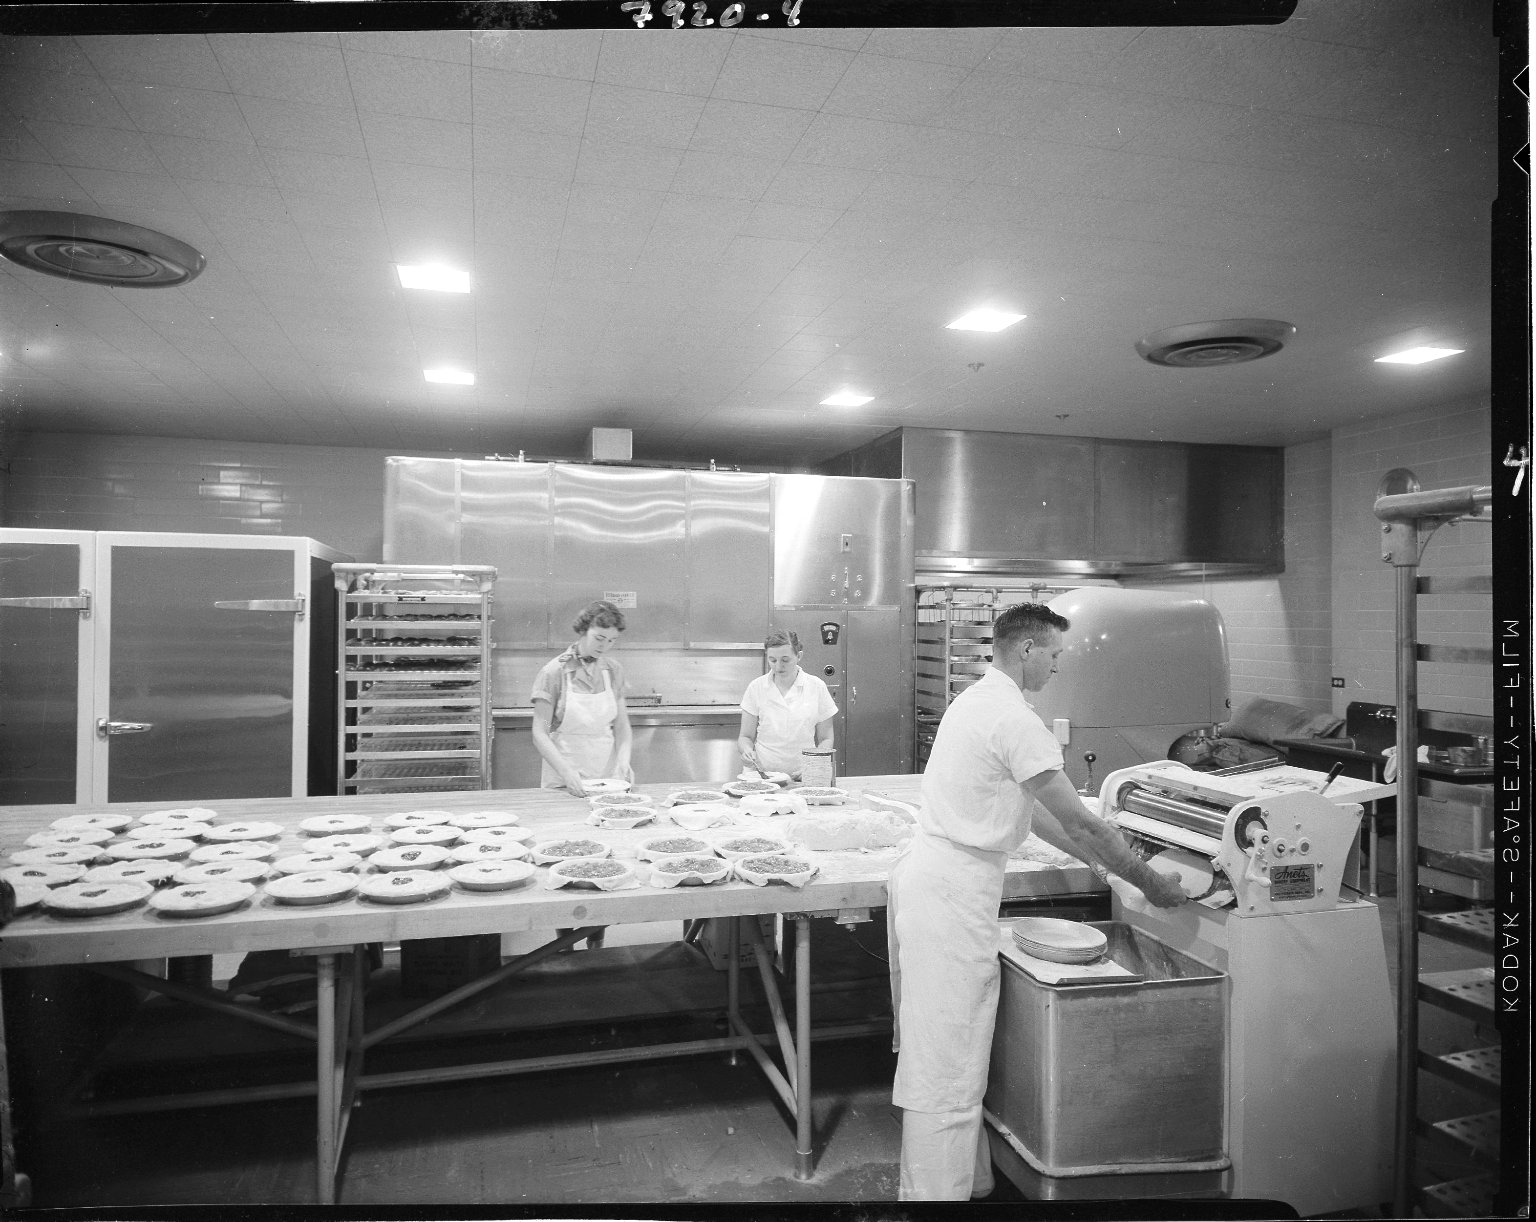 Western Michigan University, Bernhard Student Center, interior, kitchen staff preparing pies